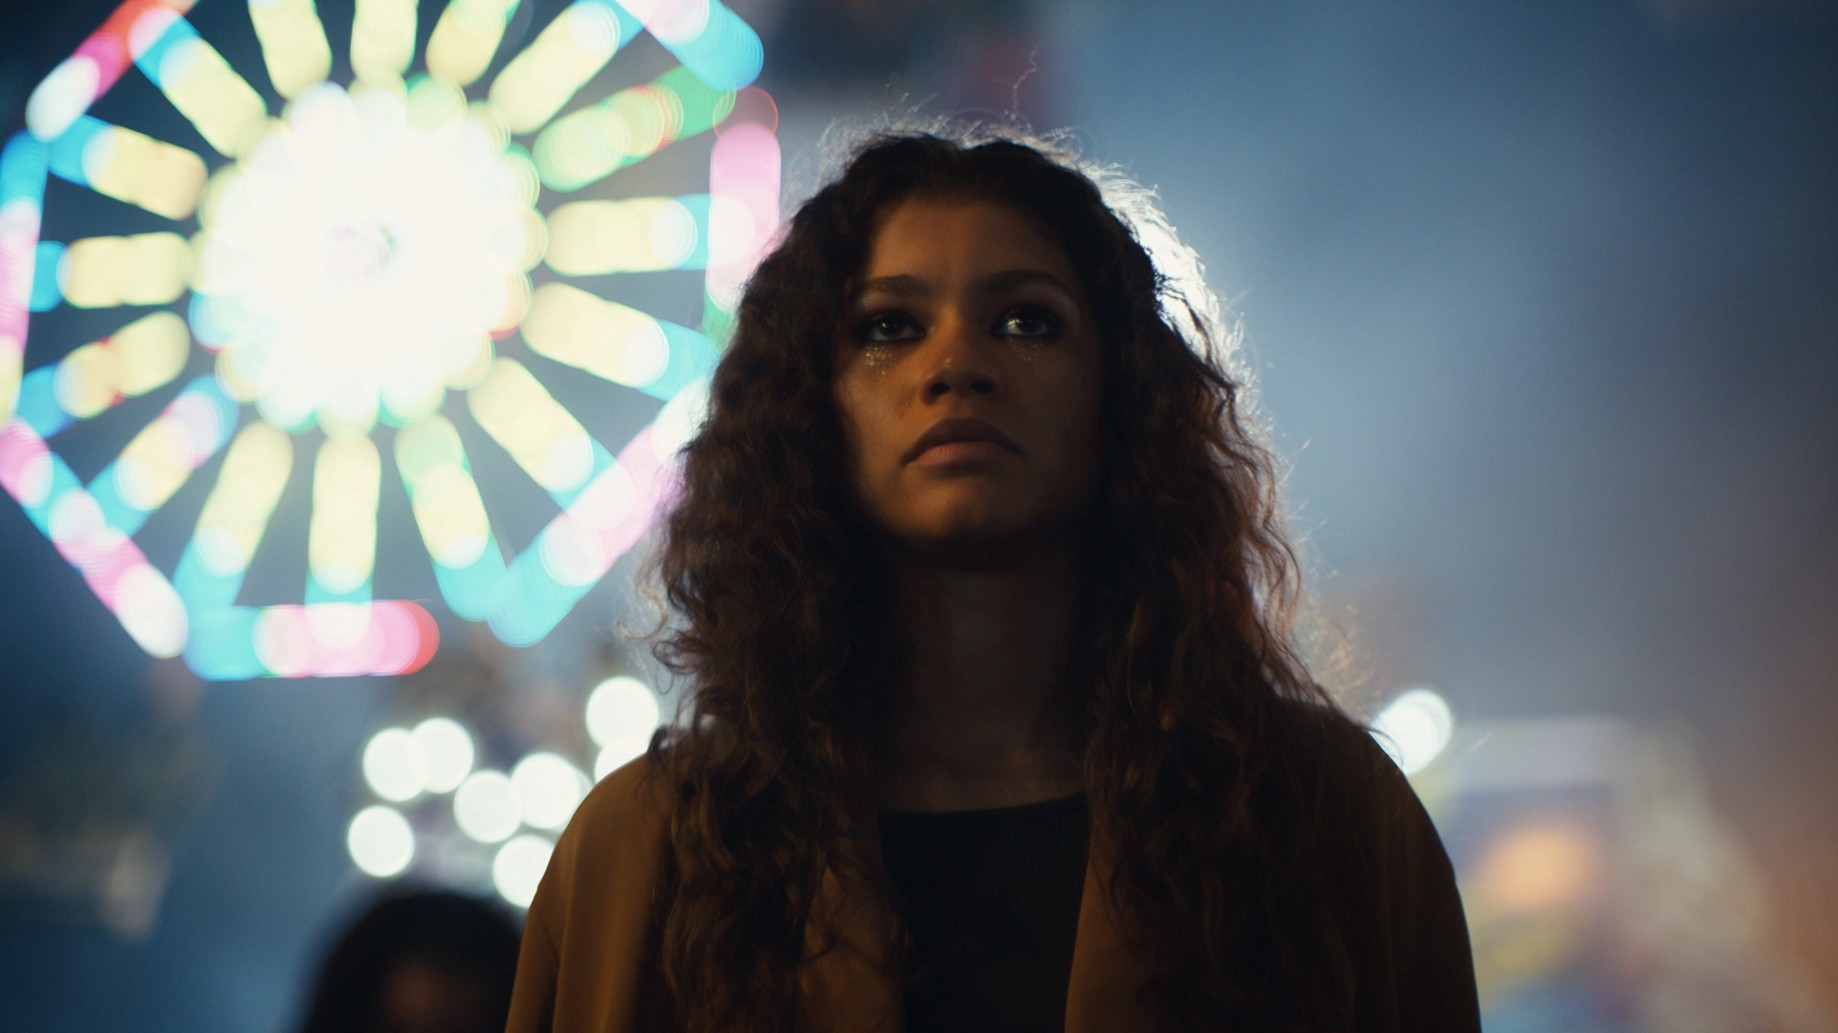 Euphoria (US) Season 1 Episode 8 :: And Salt the Earth